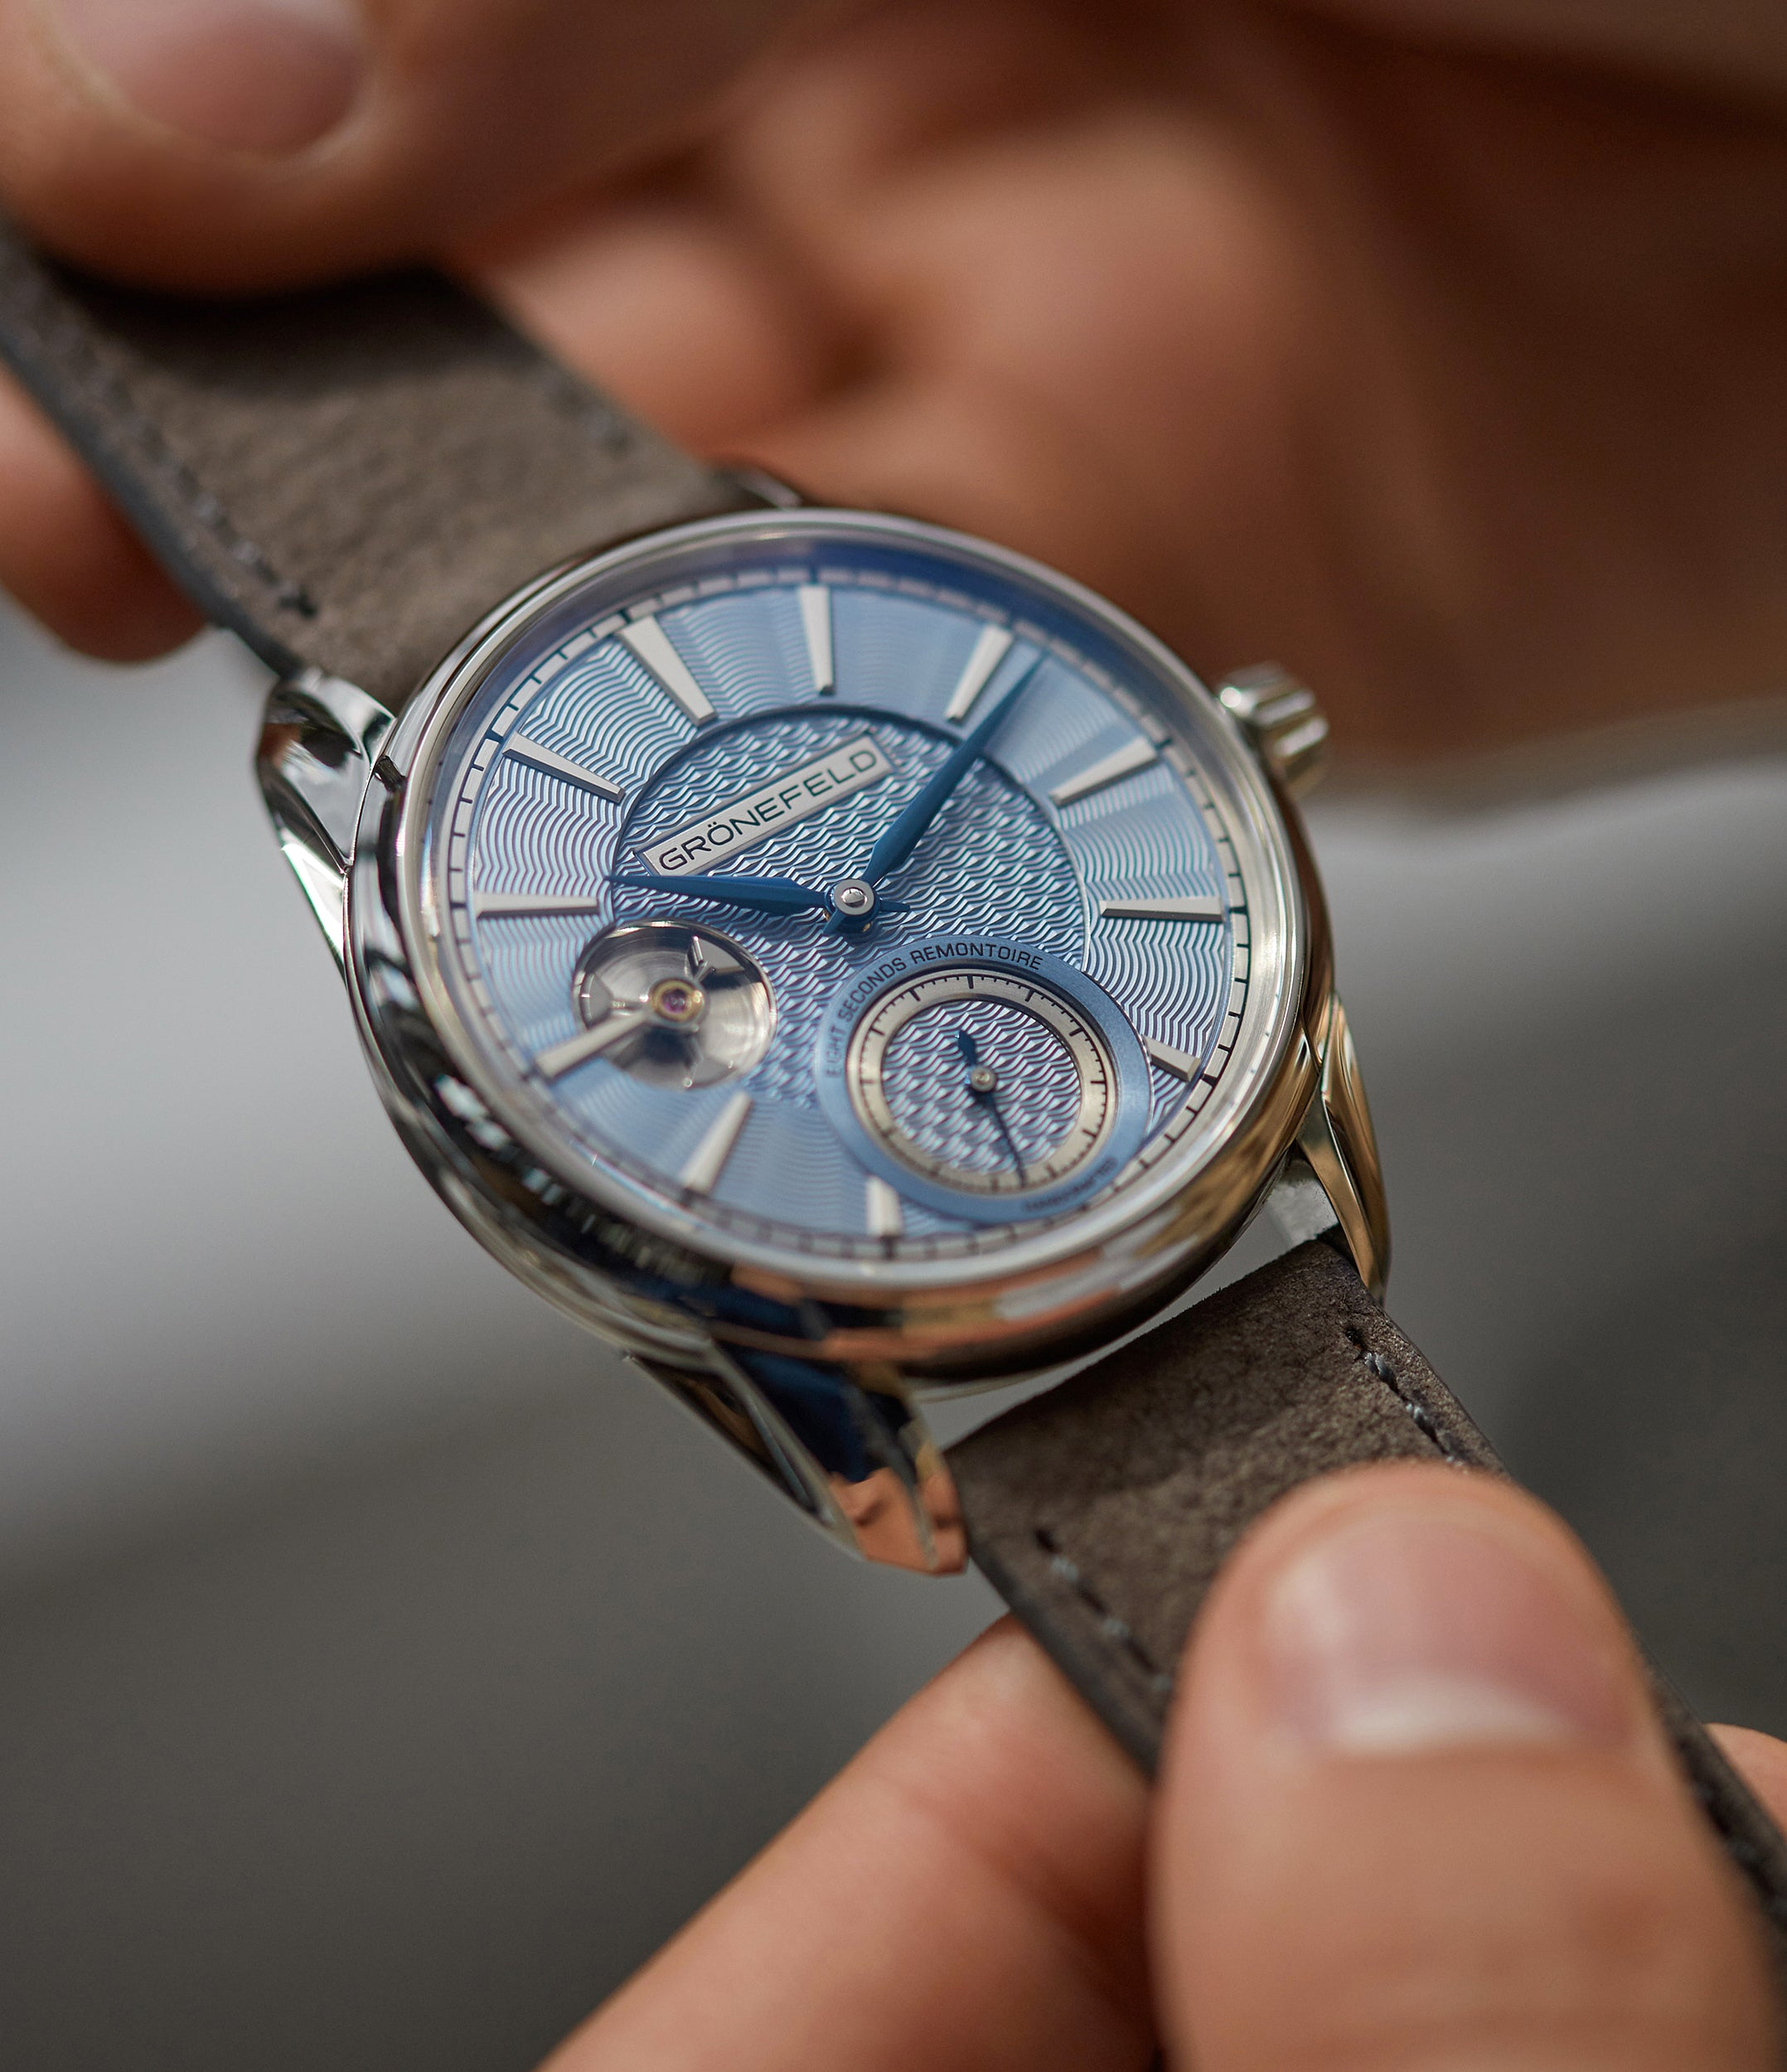 Grönefeld brothers 1941 Remontoire light blue Voutilainen dial eight seconds remontoire time-only dress watch for sale online at A Collected Man London UK specialist of independent watchmakers